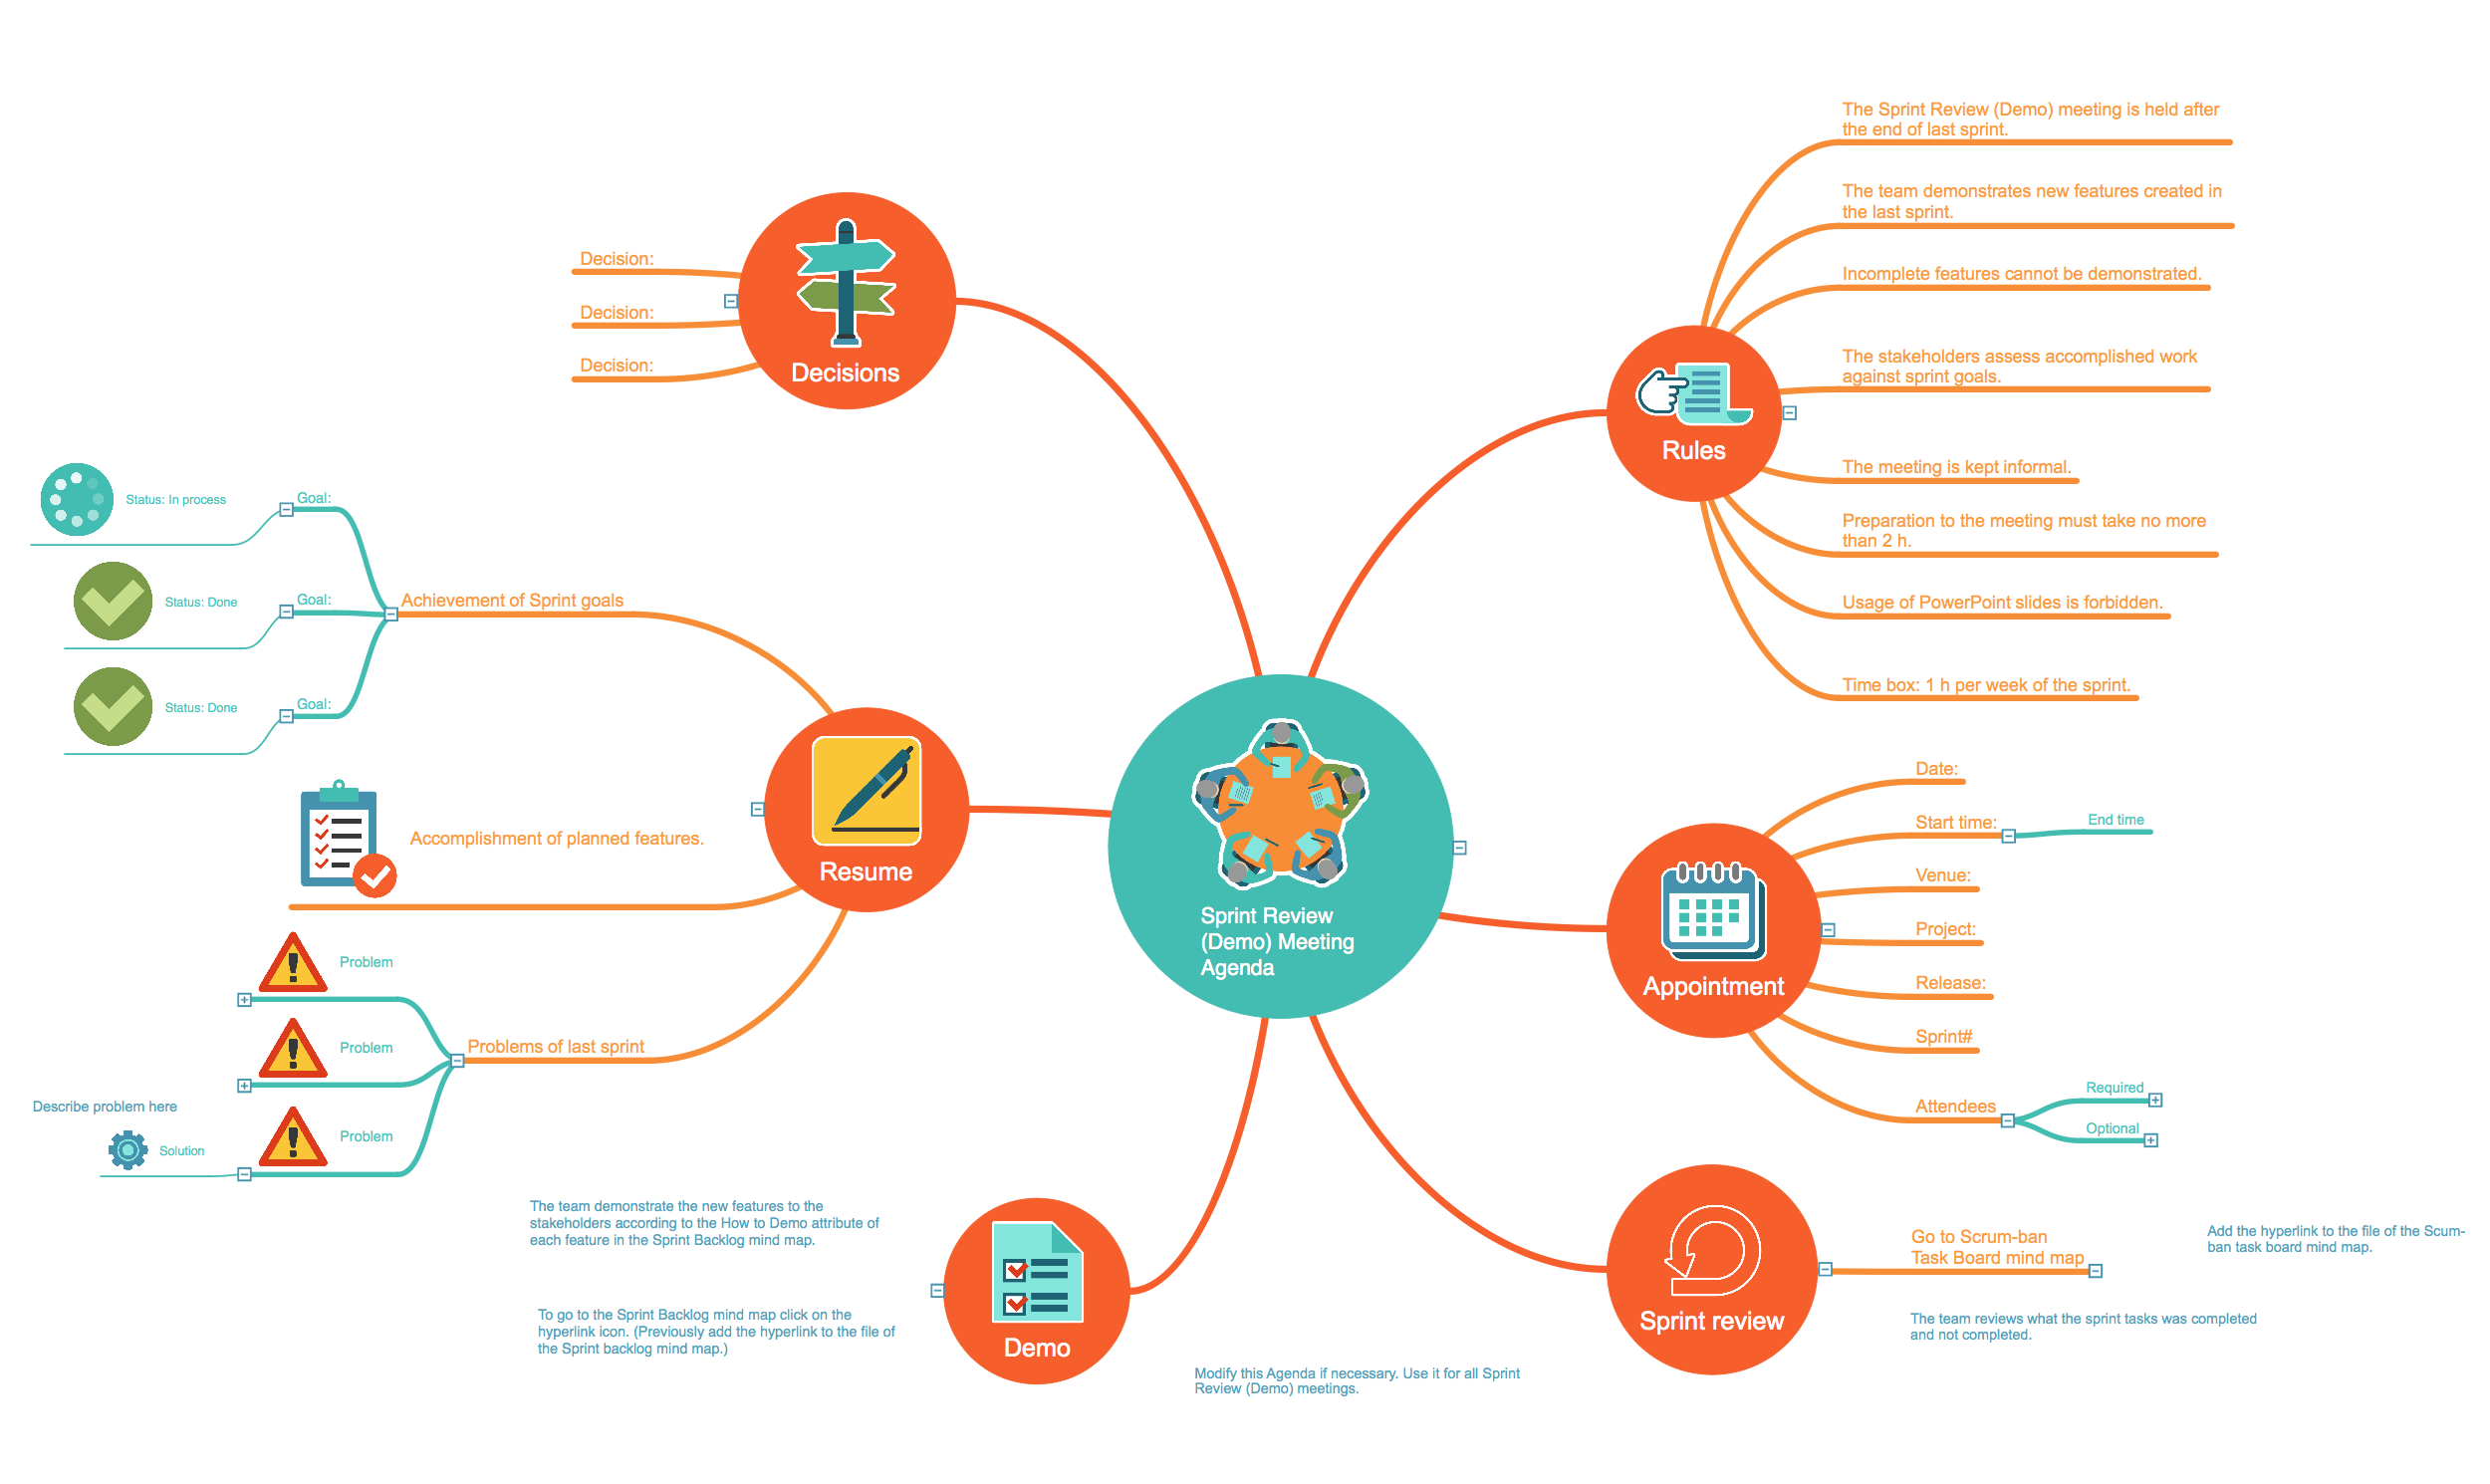 sprint review agenda mindmap template this mindmap was created in conceptdraw mindmap enhanced - Conceptdraw Mind Map